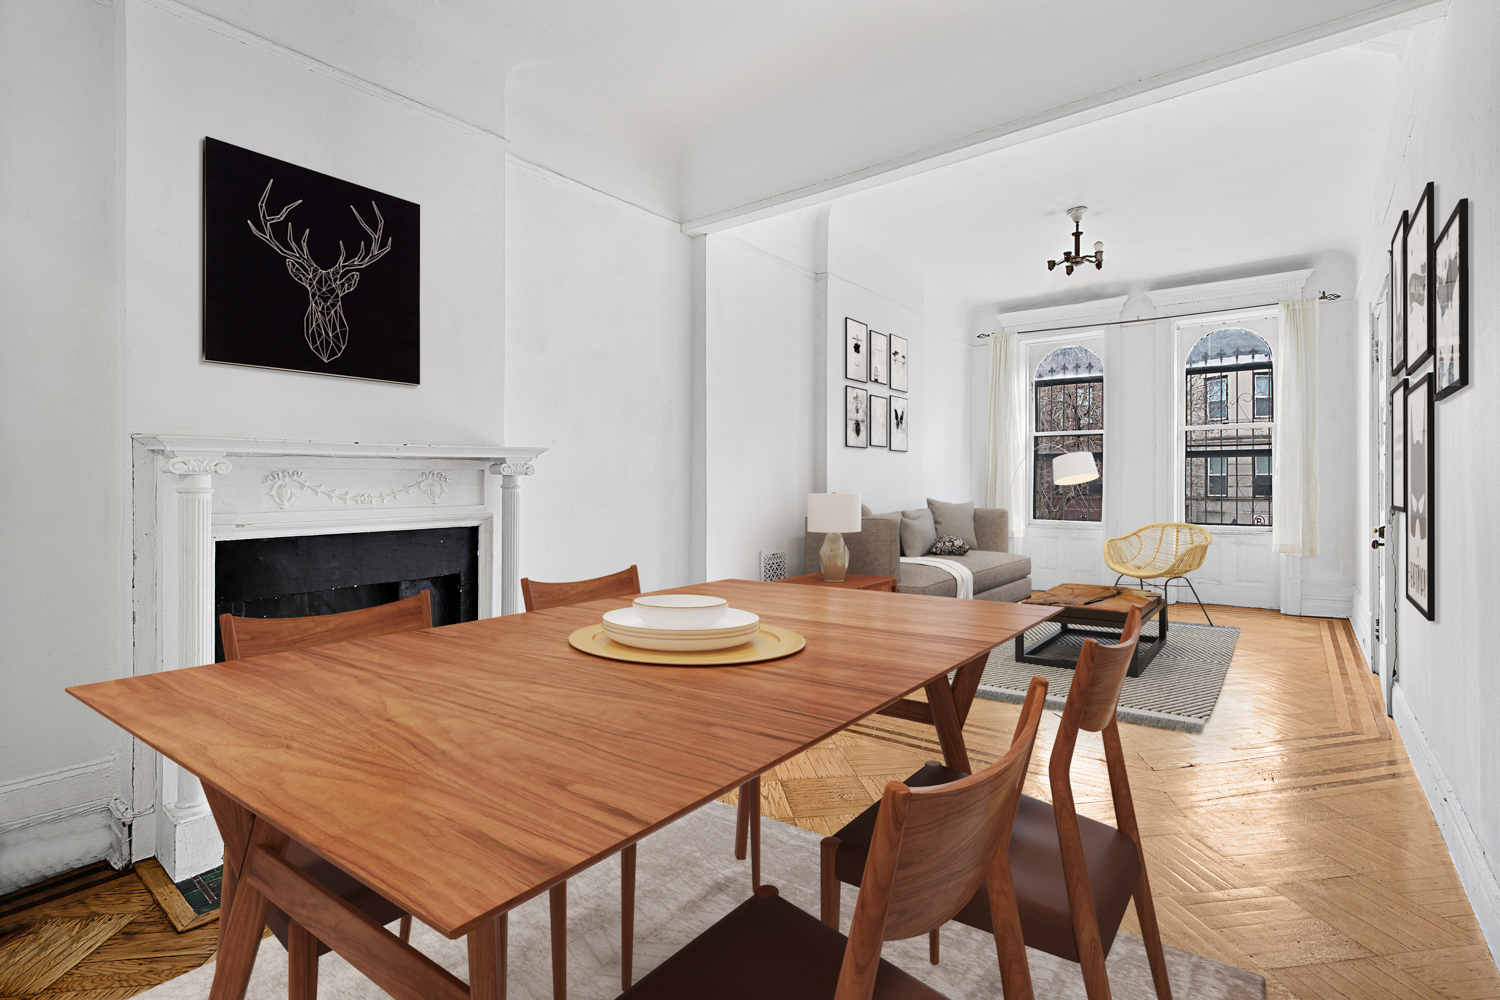 799 Lincoln place - $1,300,000 - Crown Heights